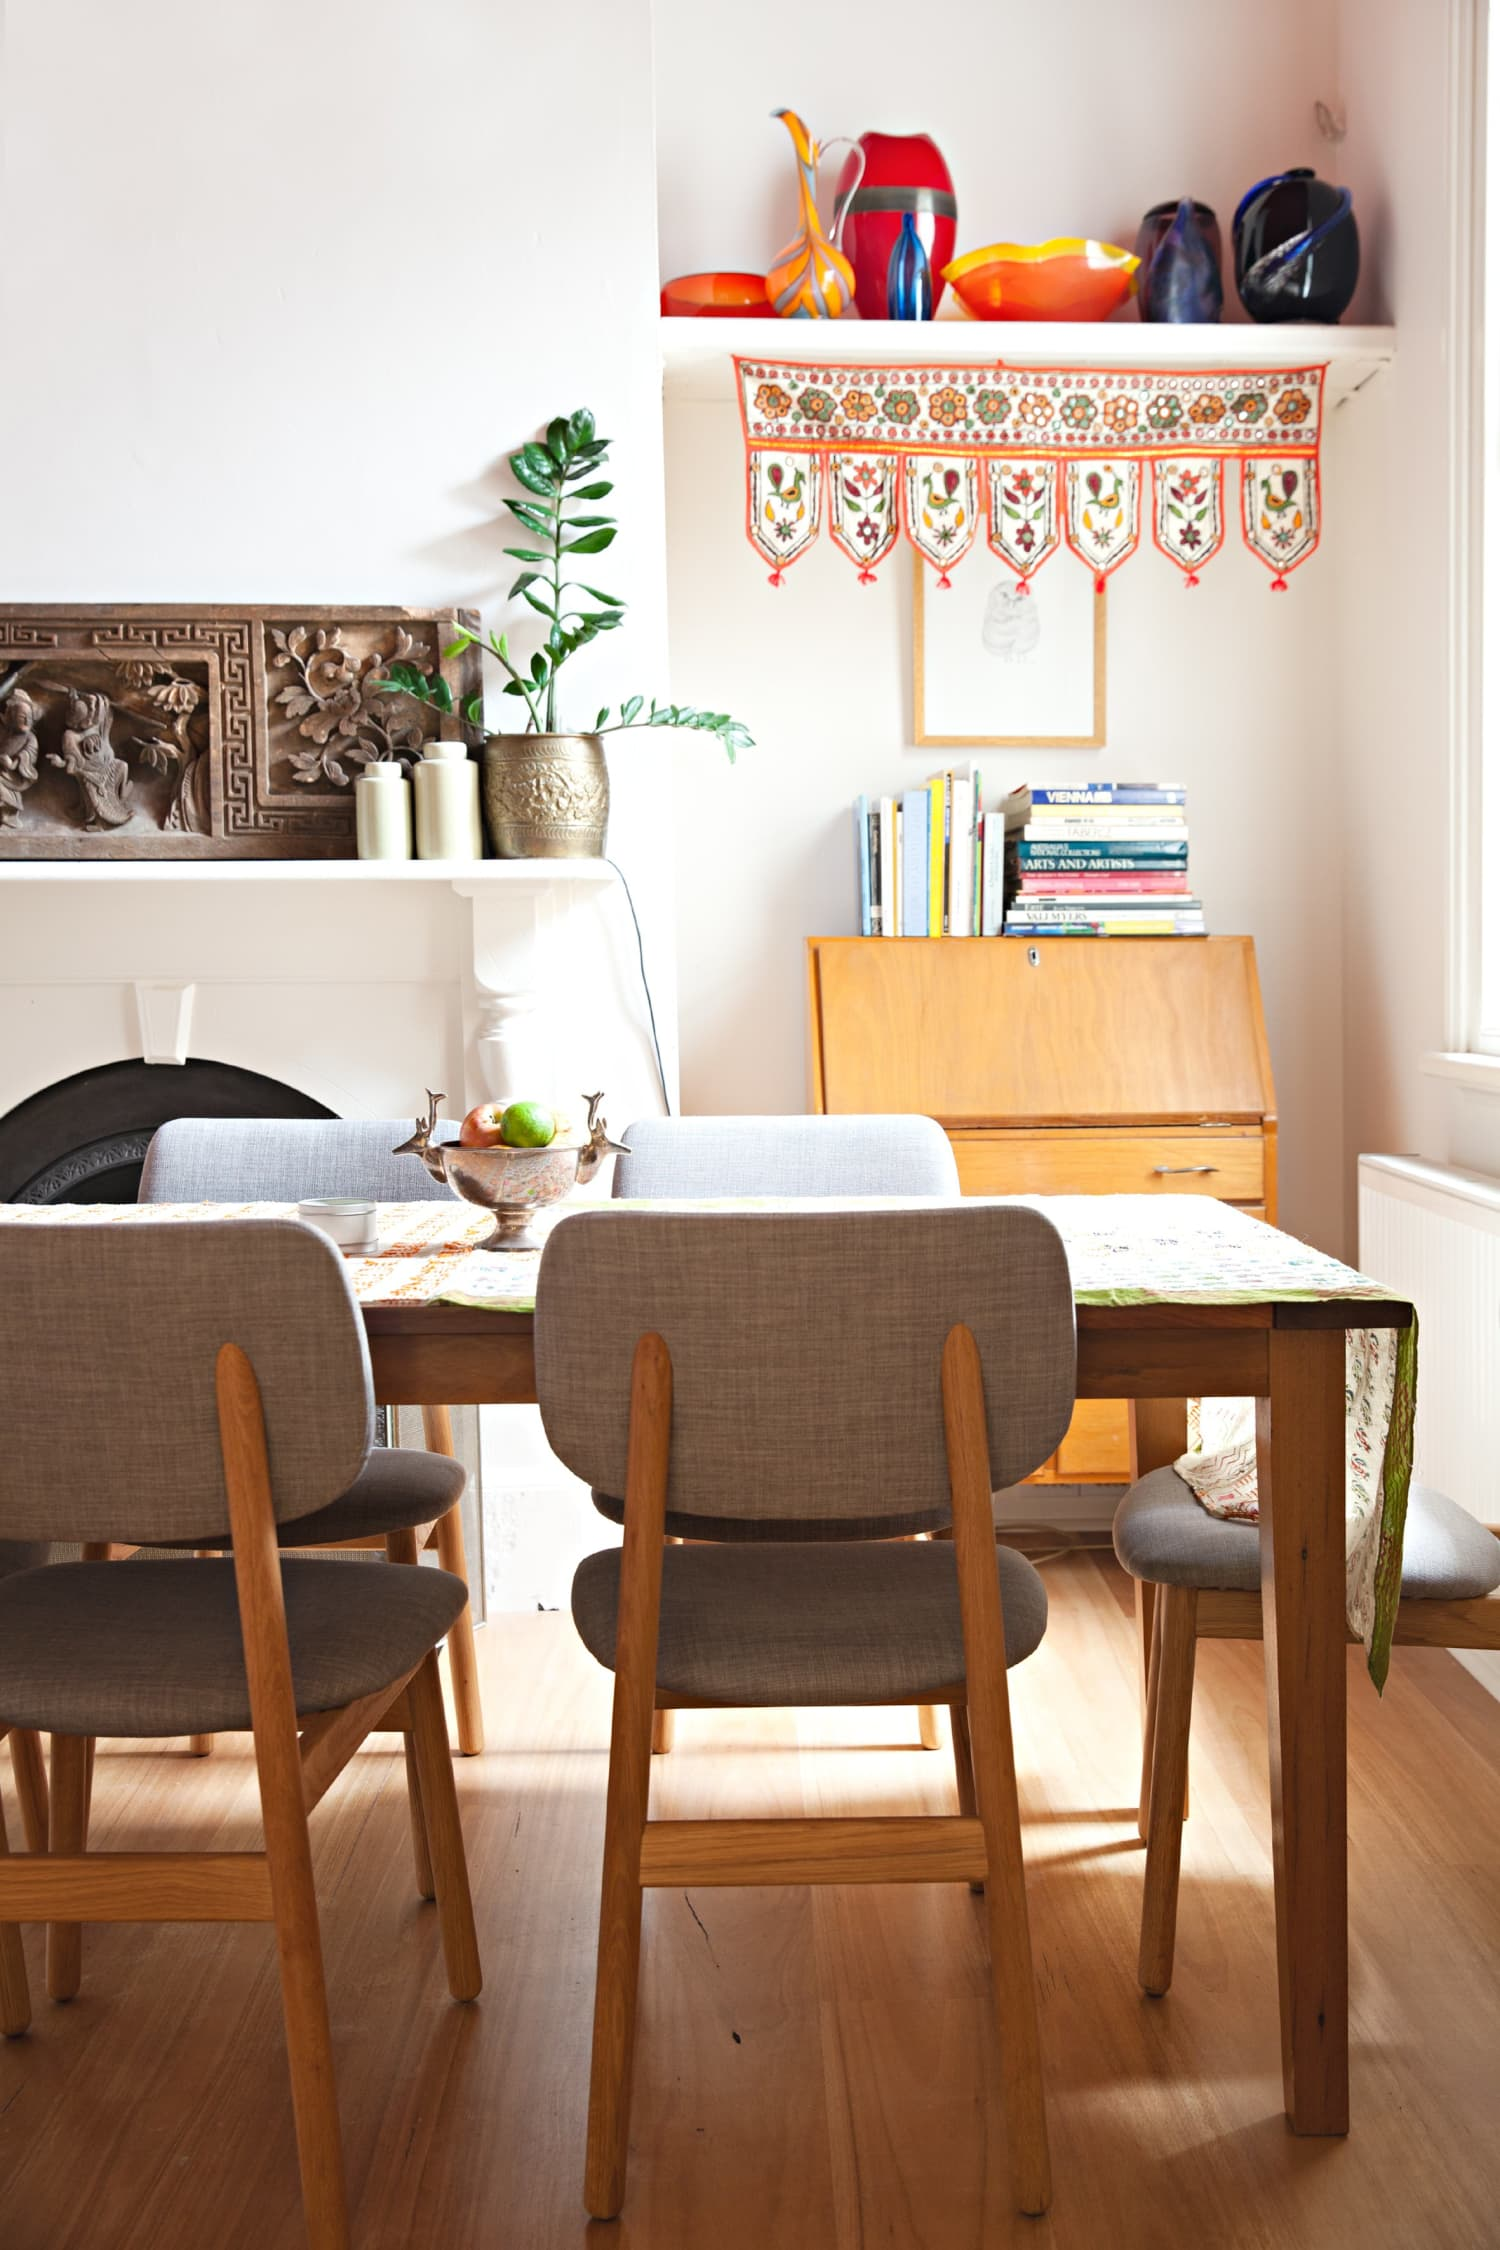 The 3 Things Your Home's Decor Should Always Reflect